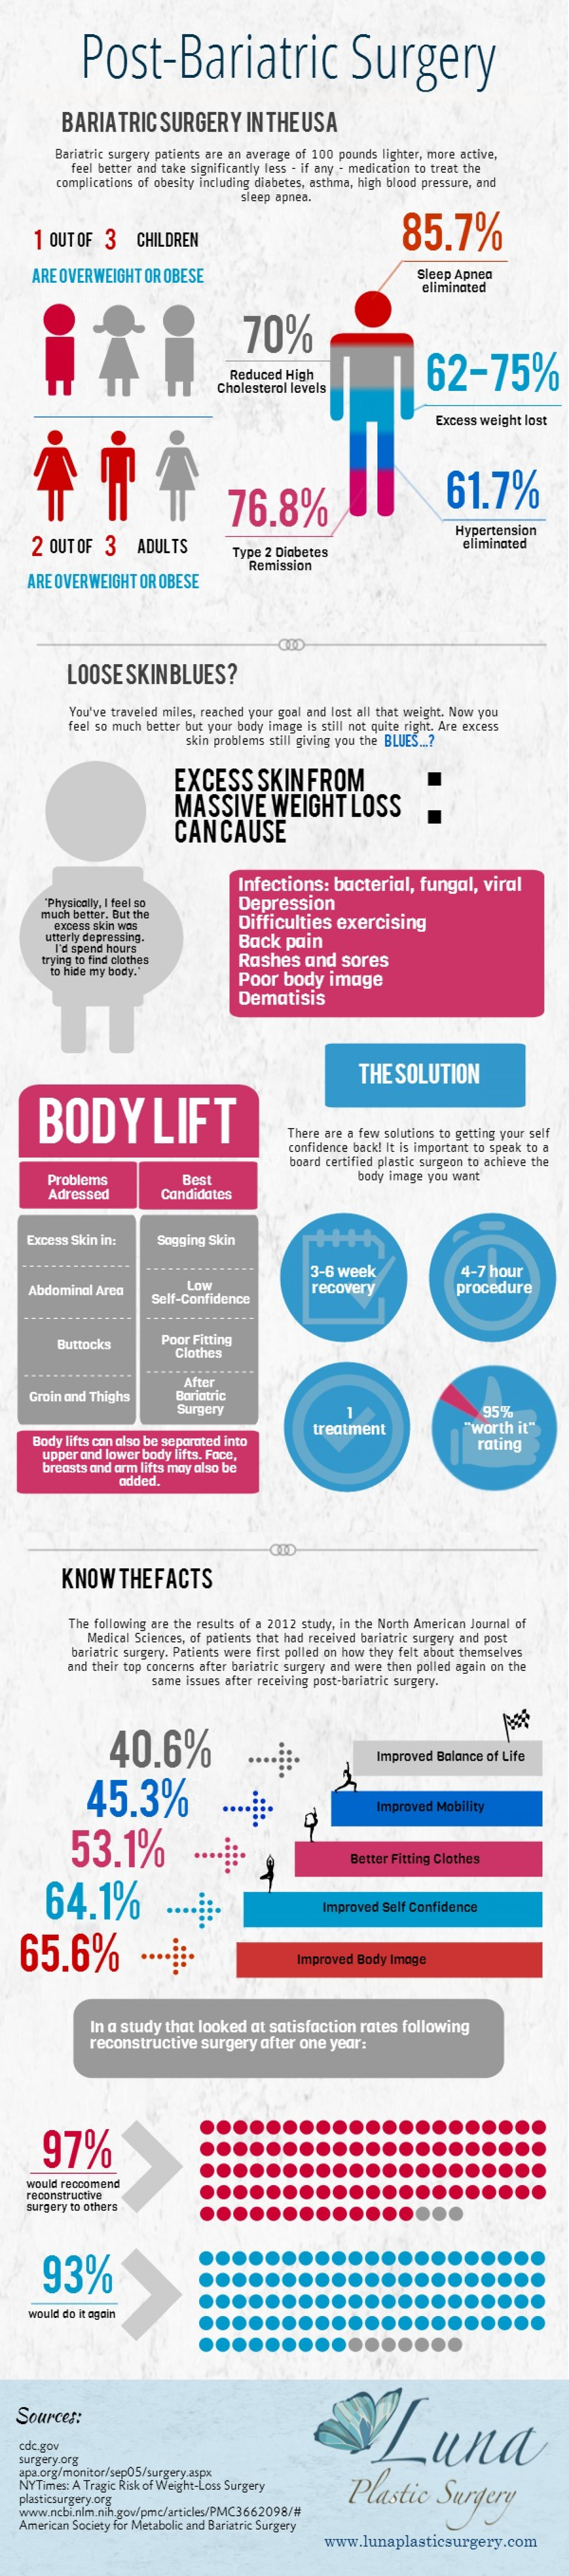 Post Bariatric Surgery Infographic